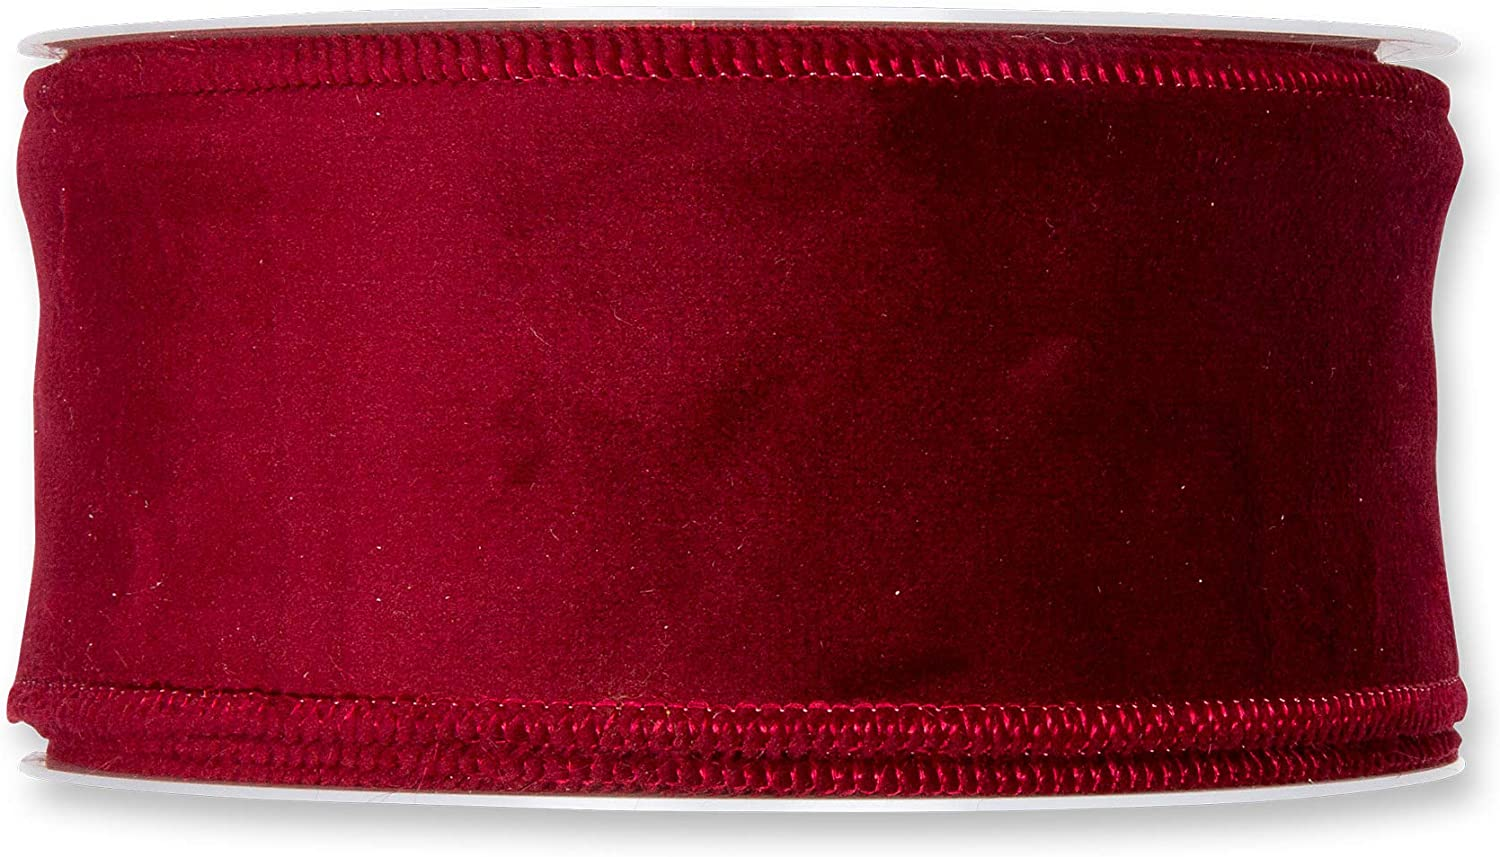 FloristryWarehouse Burgundy Red Fashionable Christmas Velvet All items in the store Ribbon Fabric 2